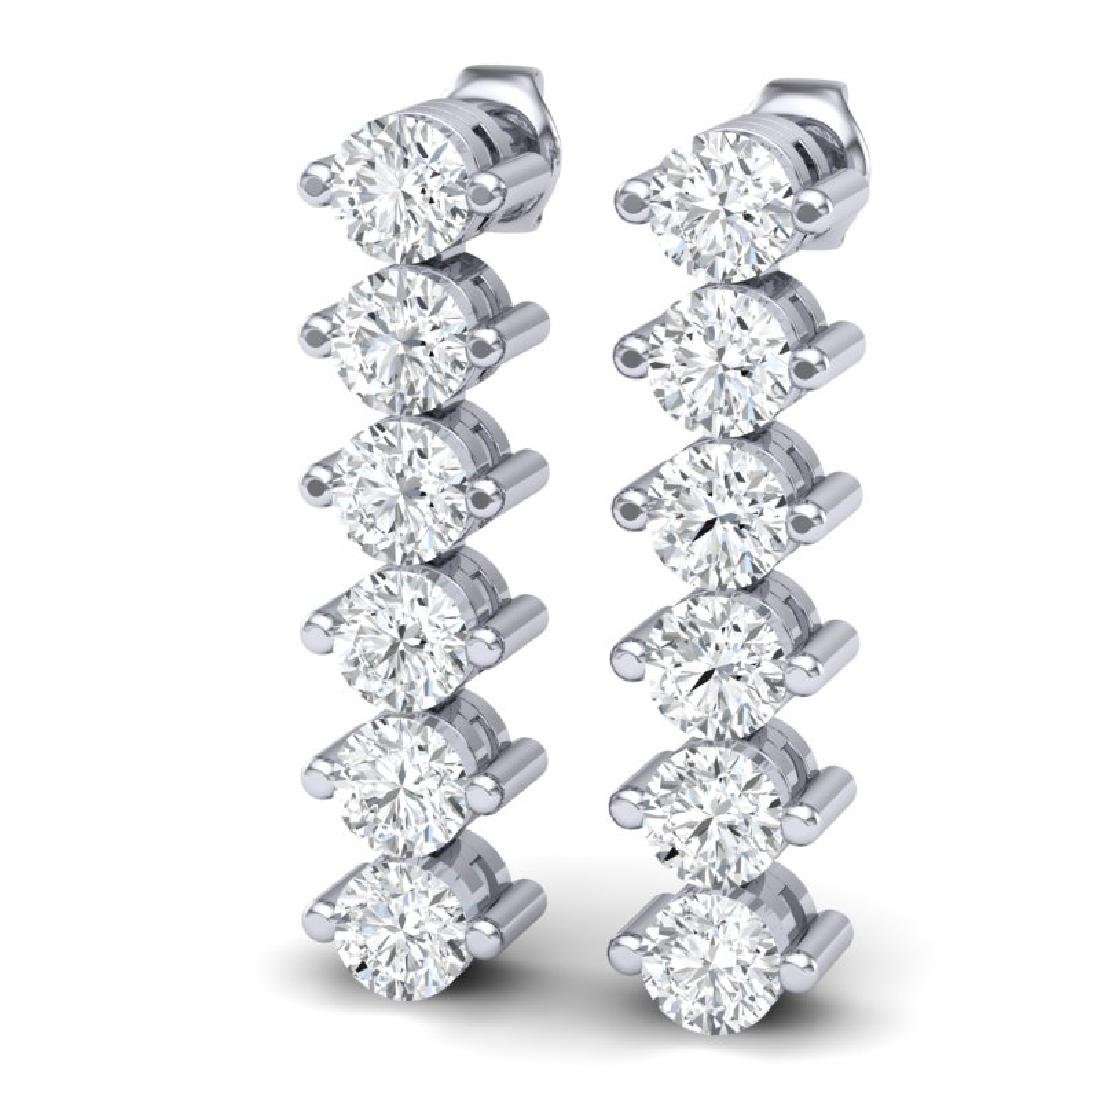 3 CTW Certified VS/SI Diamond Earrings 18K White Gold - 2